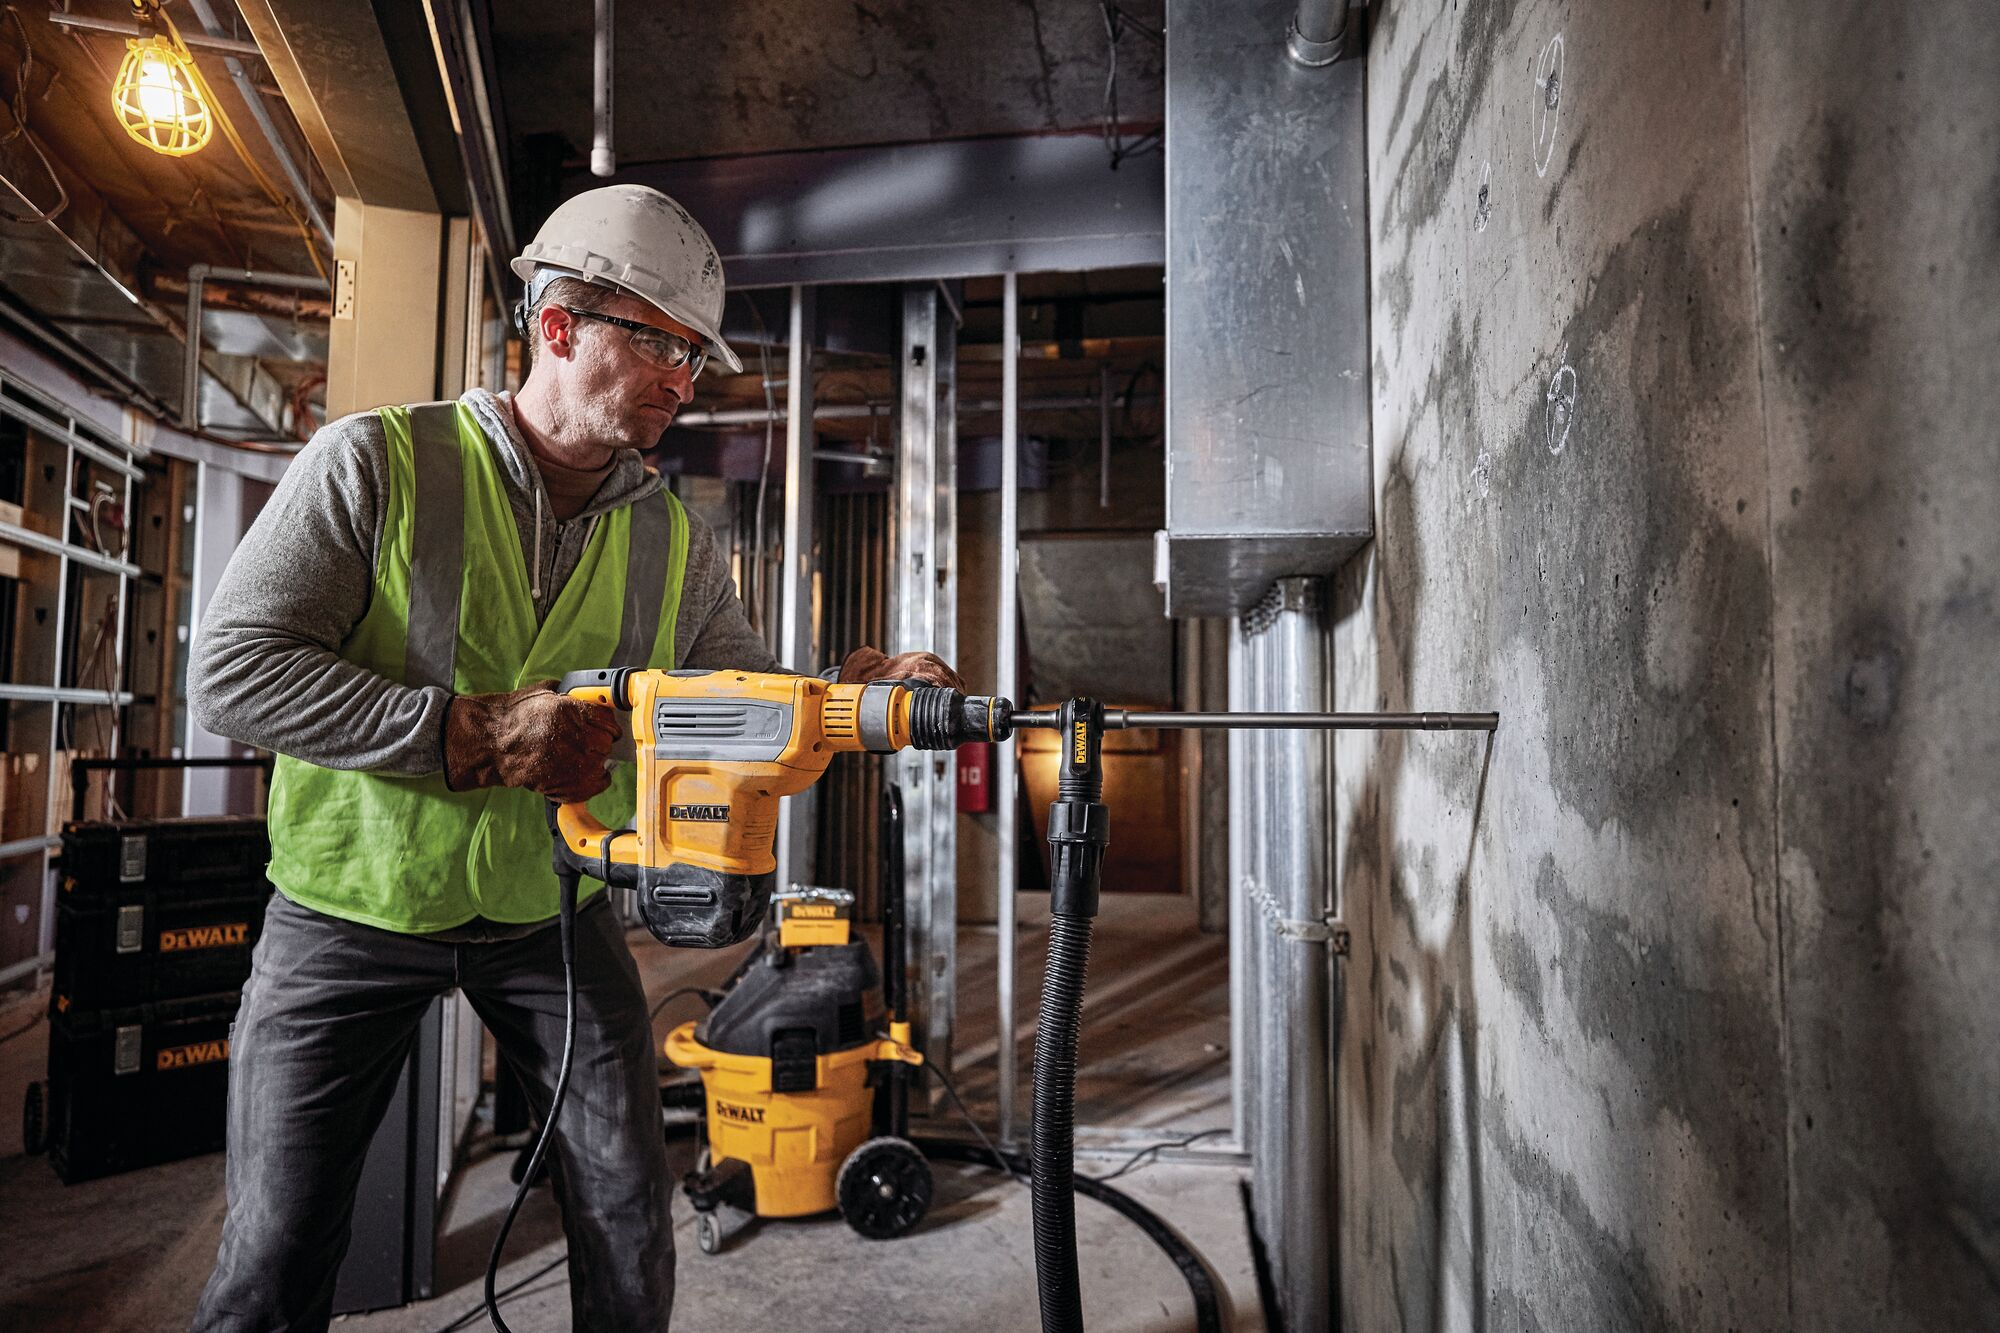 SDS MAX Combination rotary hammer being used by person